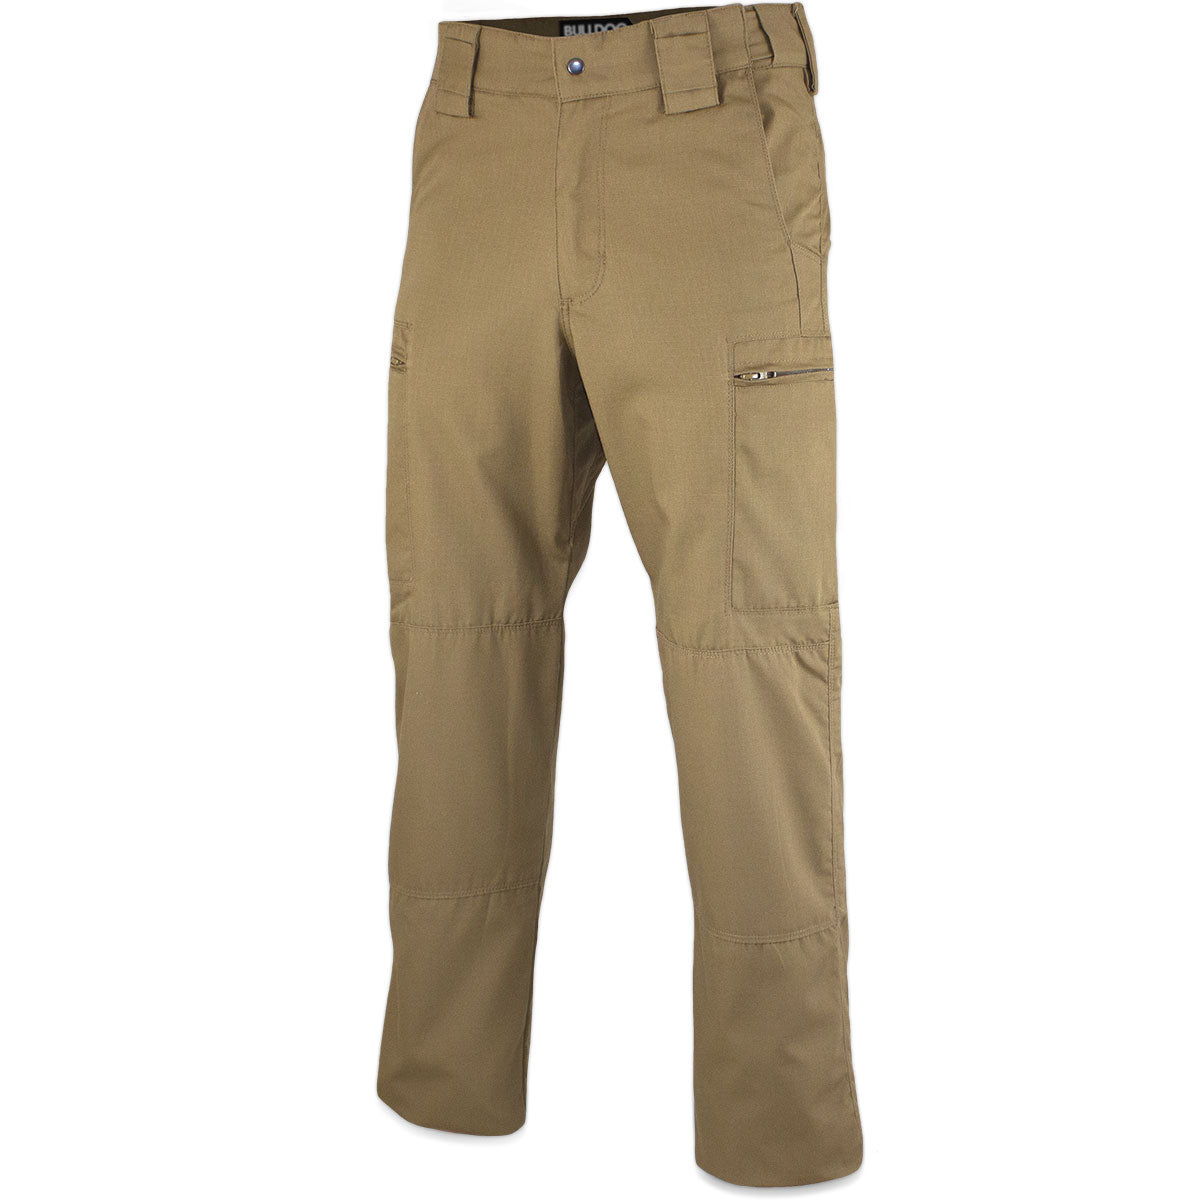 Exert Tactical Trousers Coyote | Bulldog Tactical Gear